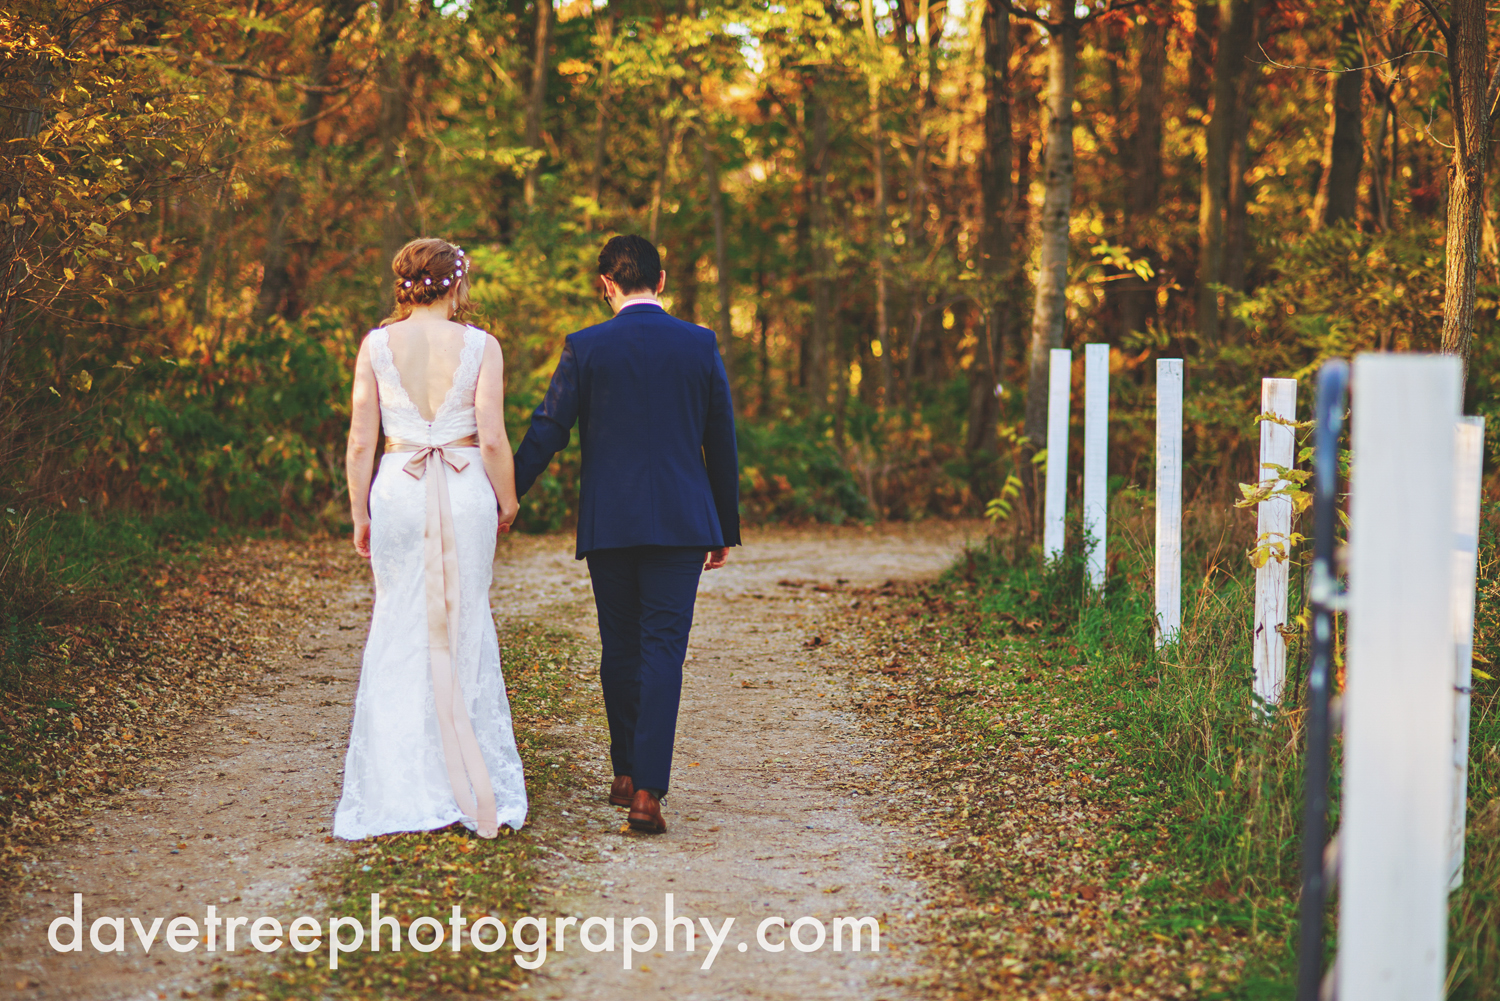 benton_harbor_wedding_photographer_blue_dress_barn_13.jpg